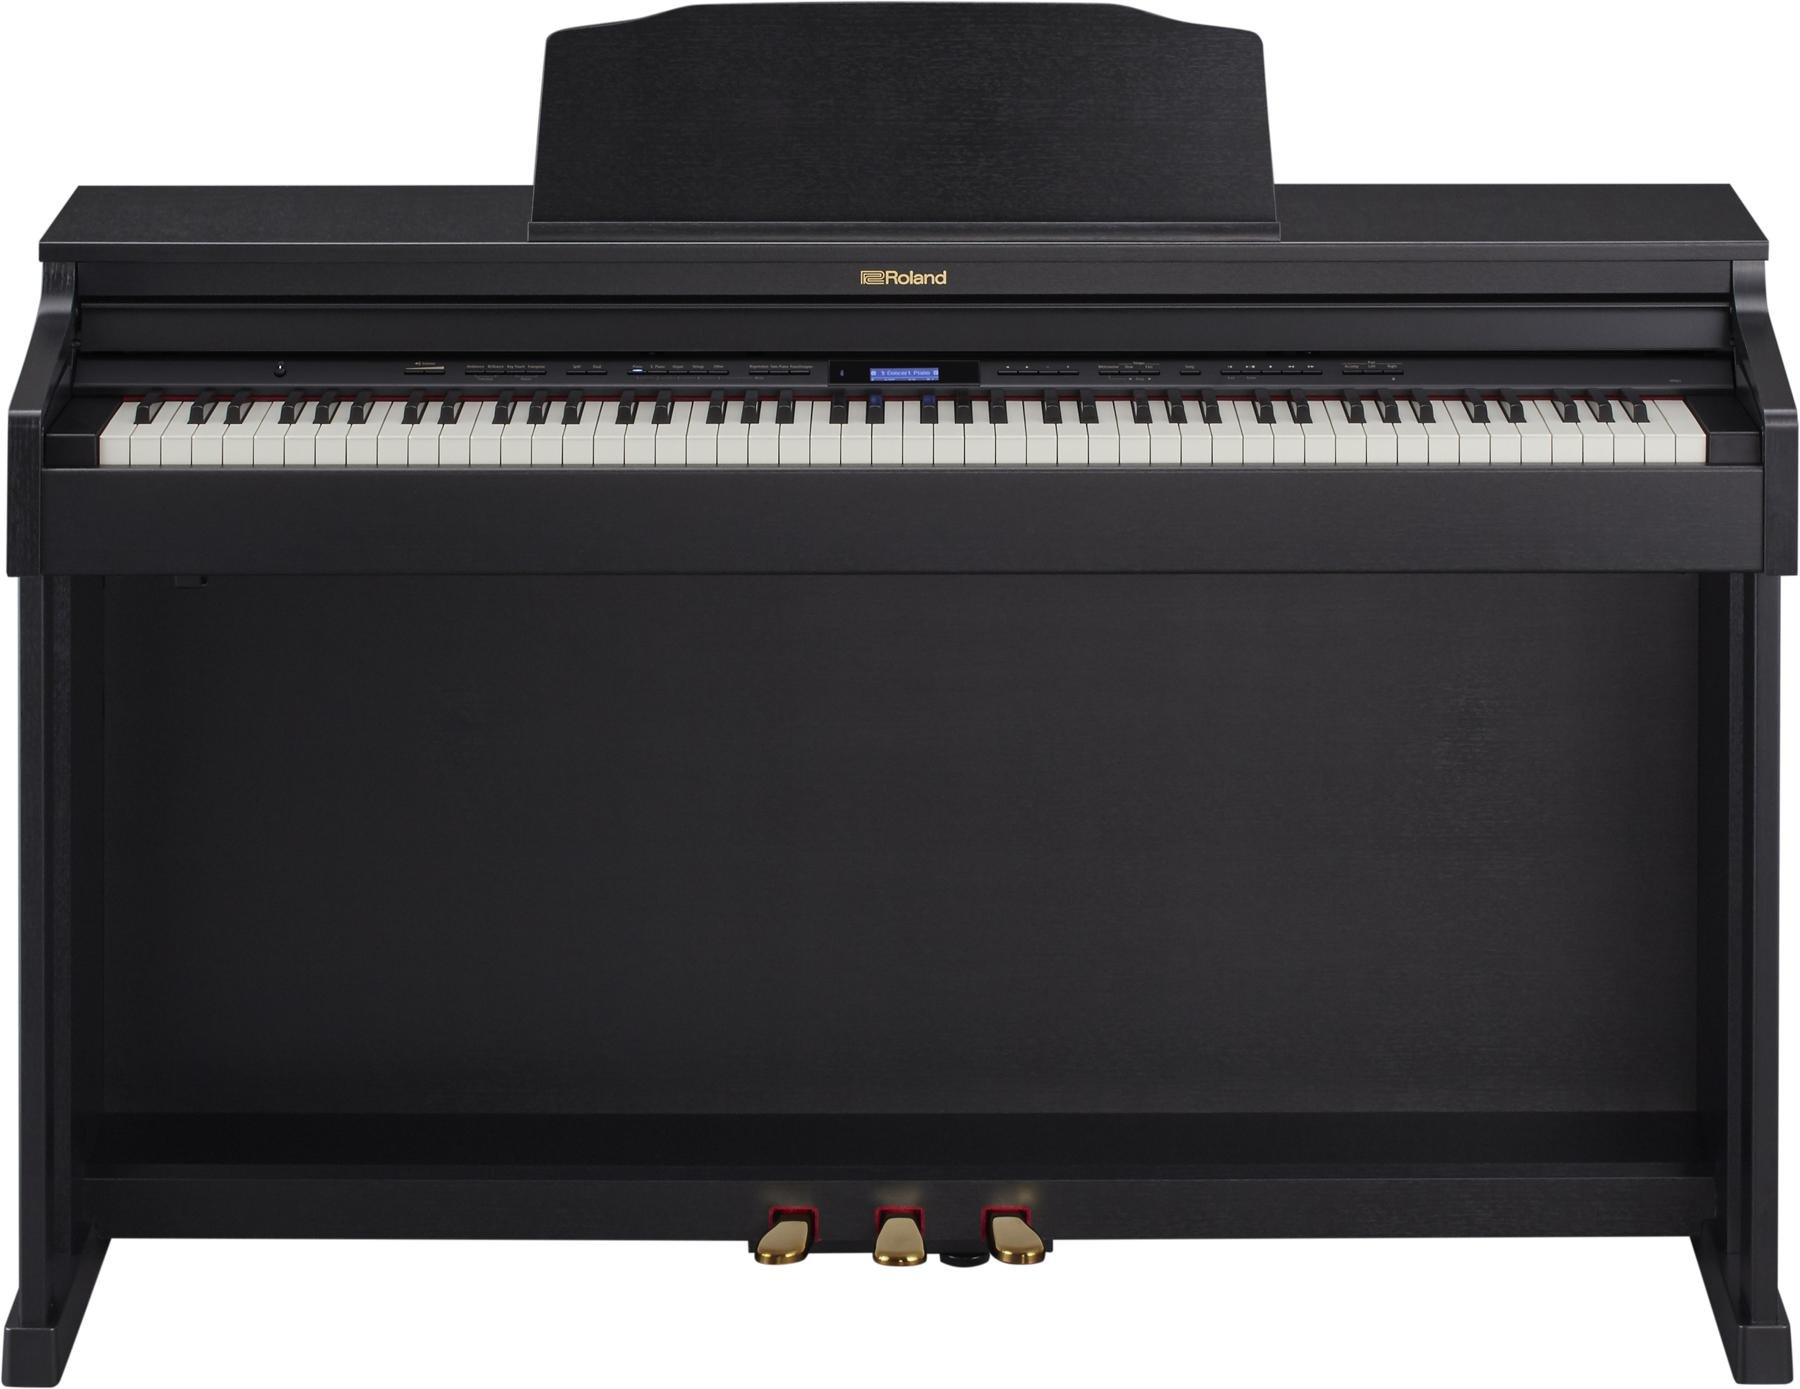 Roland HP601 Home Digital Piano Black Finish image 1